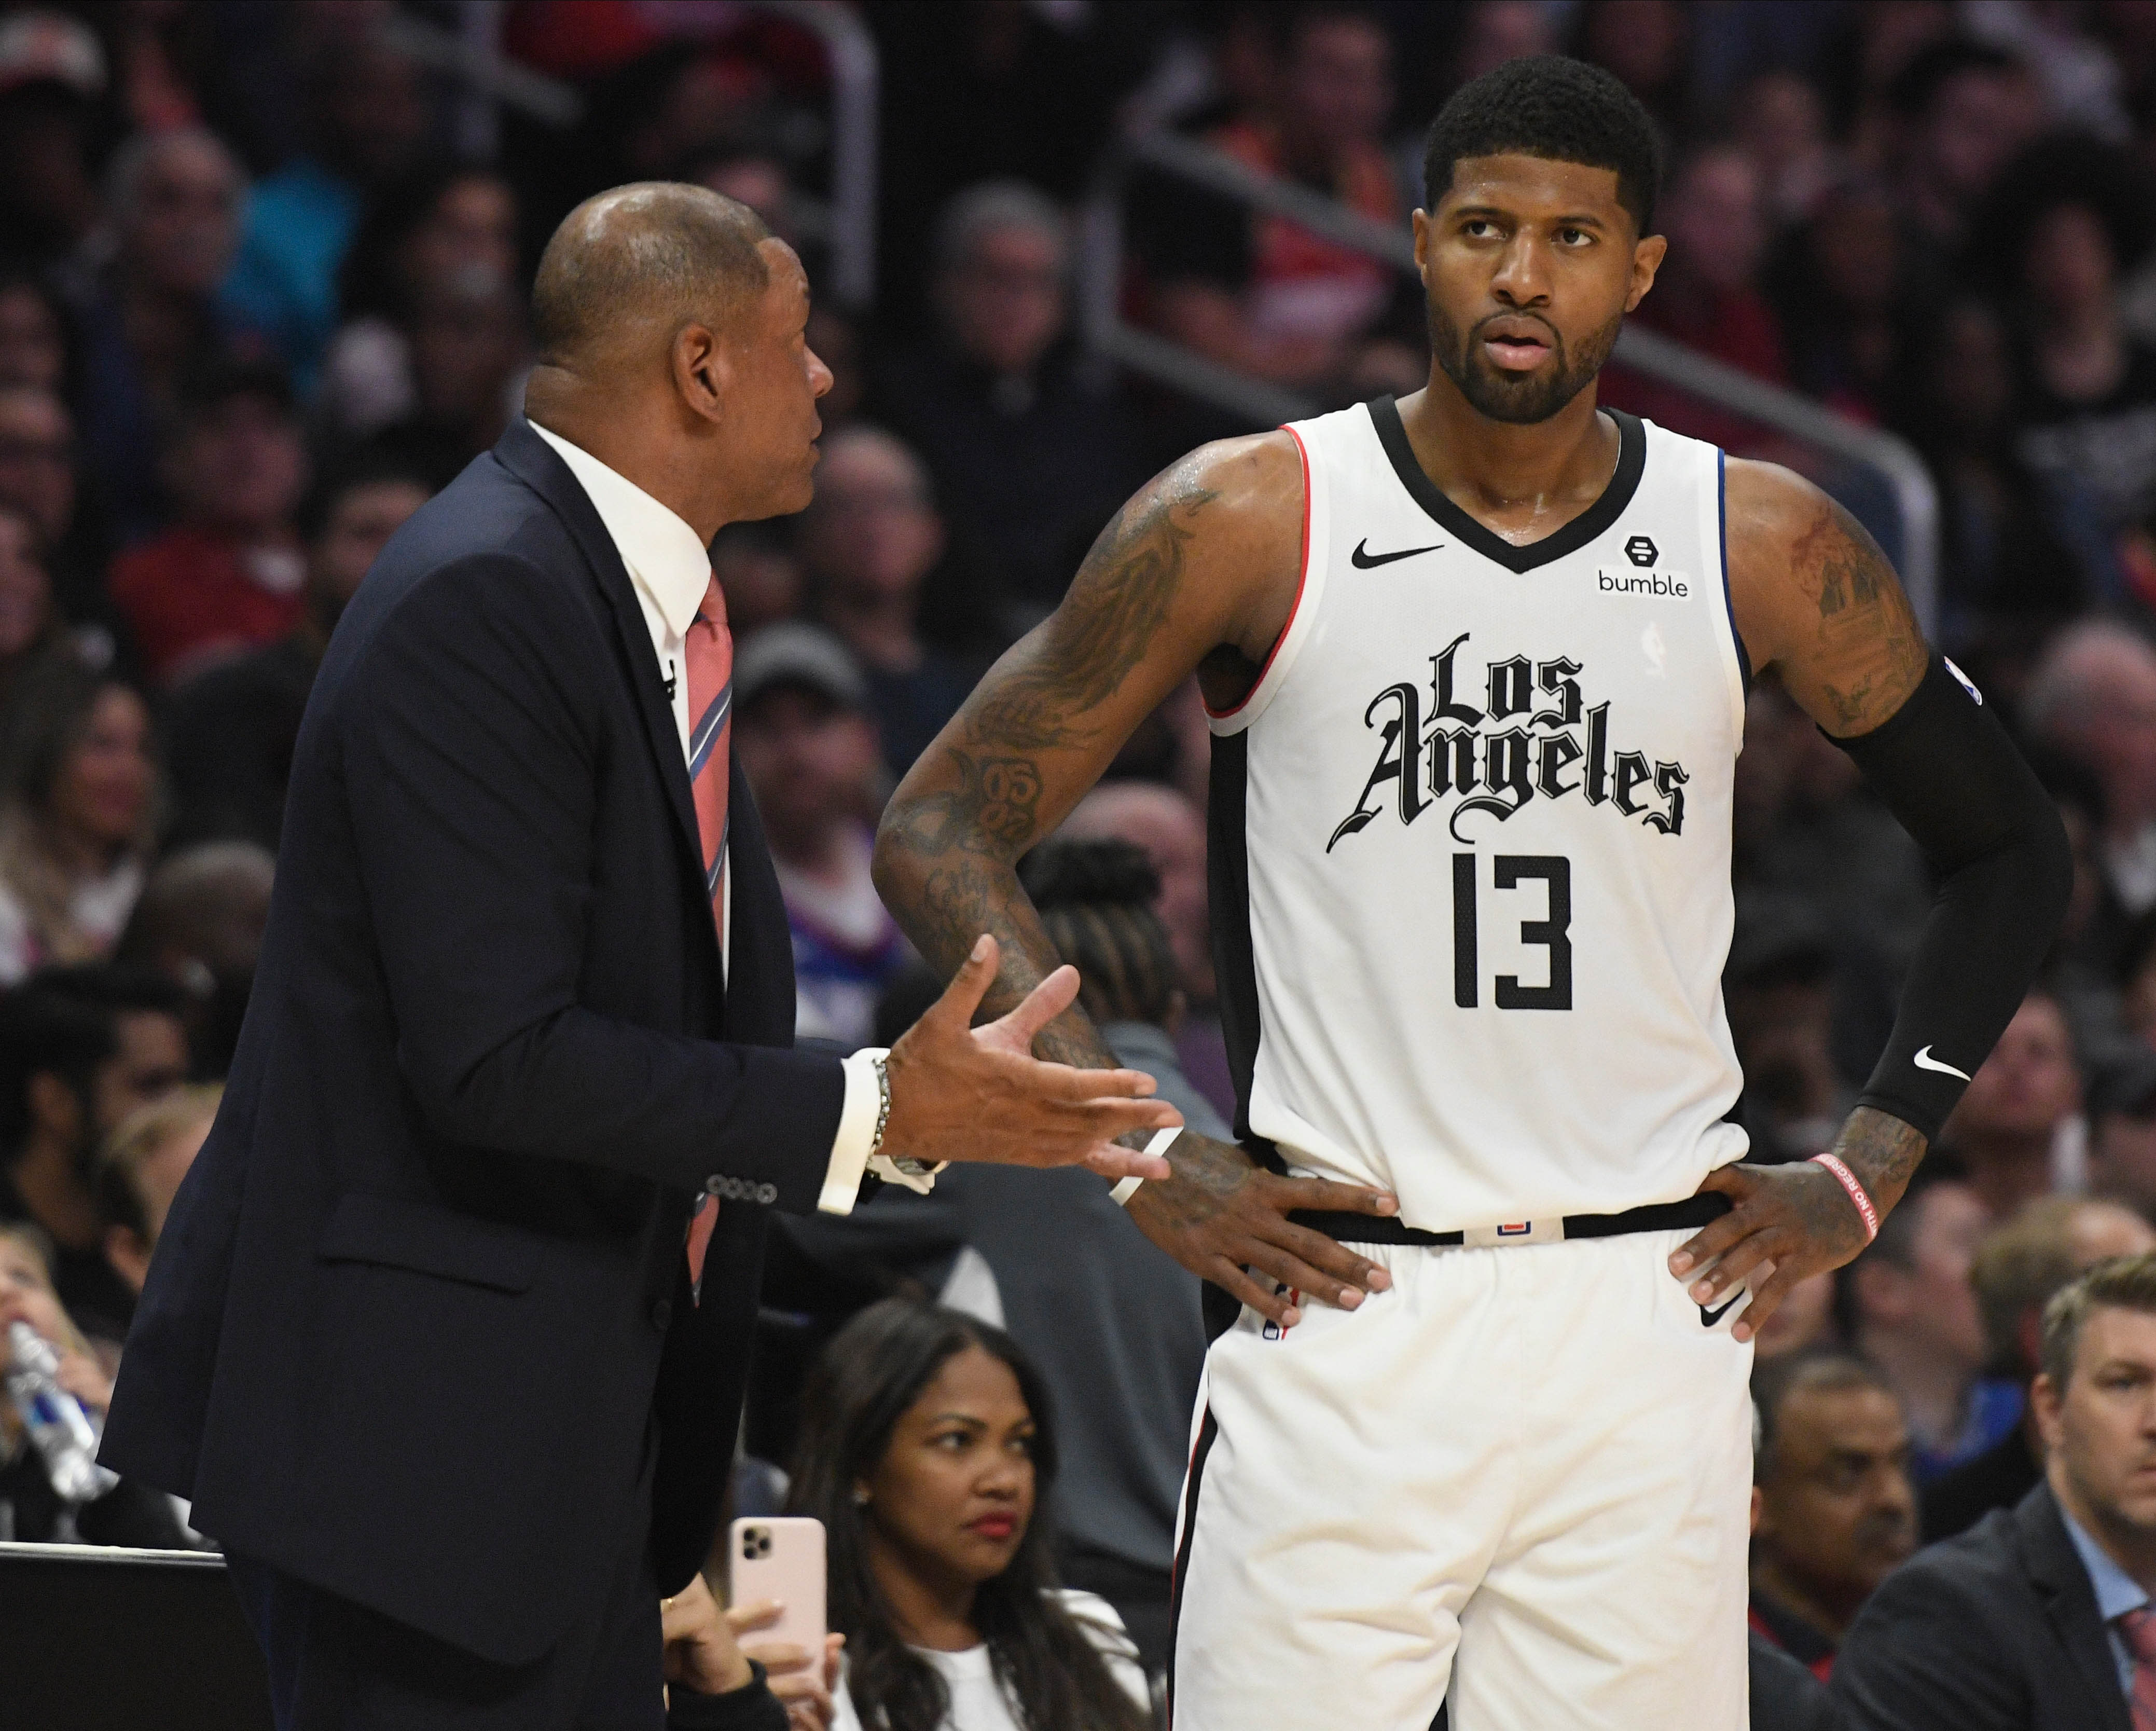 Doc Rivers Paul George Clippers Rockets Nov 2019